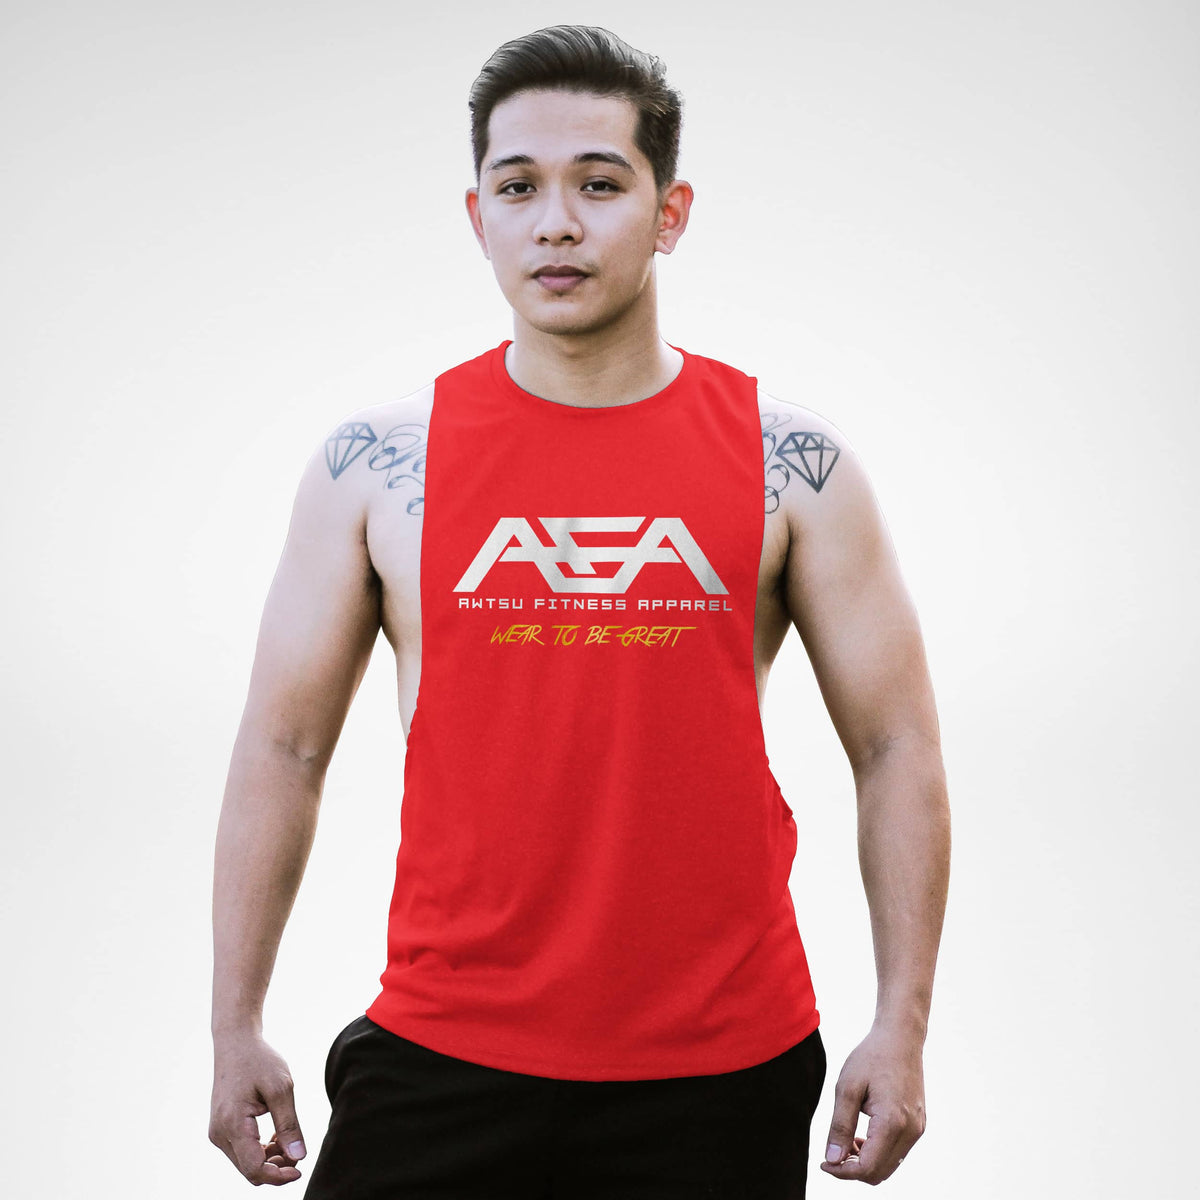 AM153 AFA Wear To Be Great Openside Tank Top